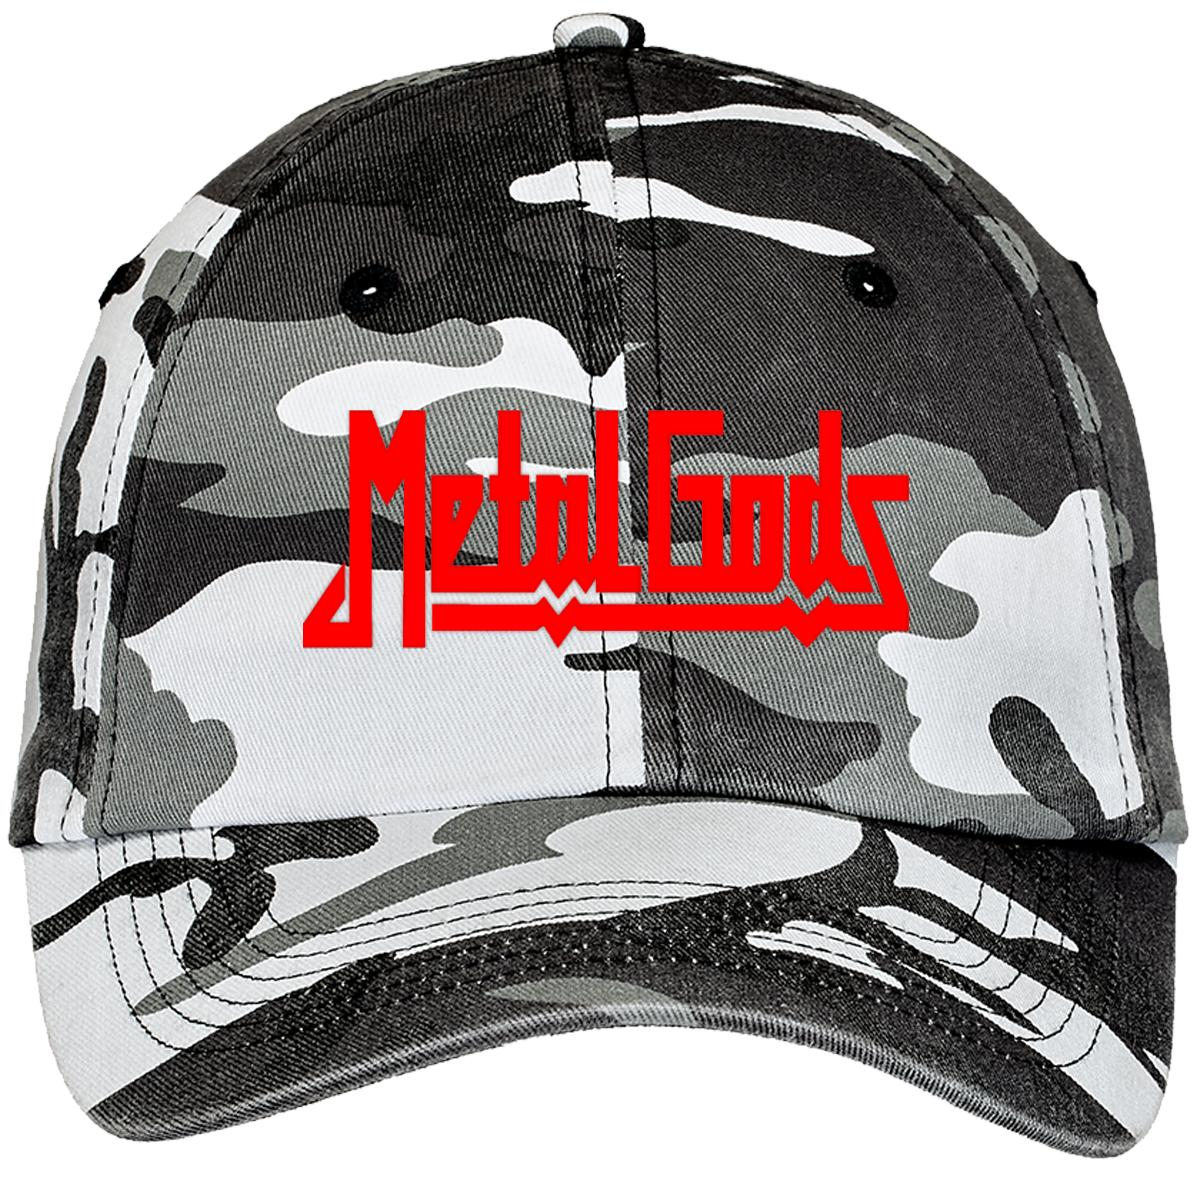 Judas Priest Metal Gods Camouflage Cotton Twill Cap (Embroidered ... f39e9023e70f